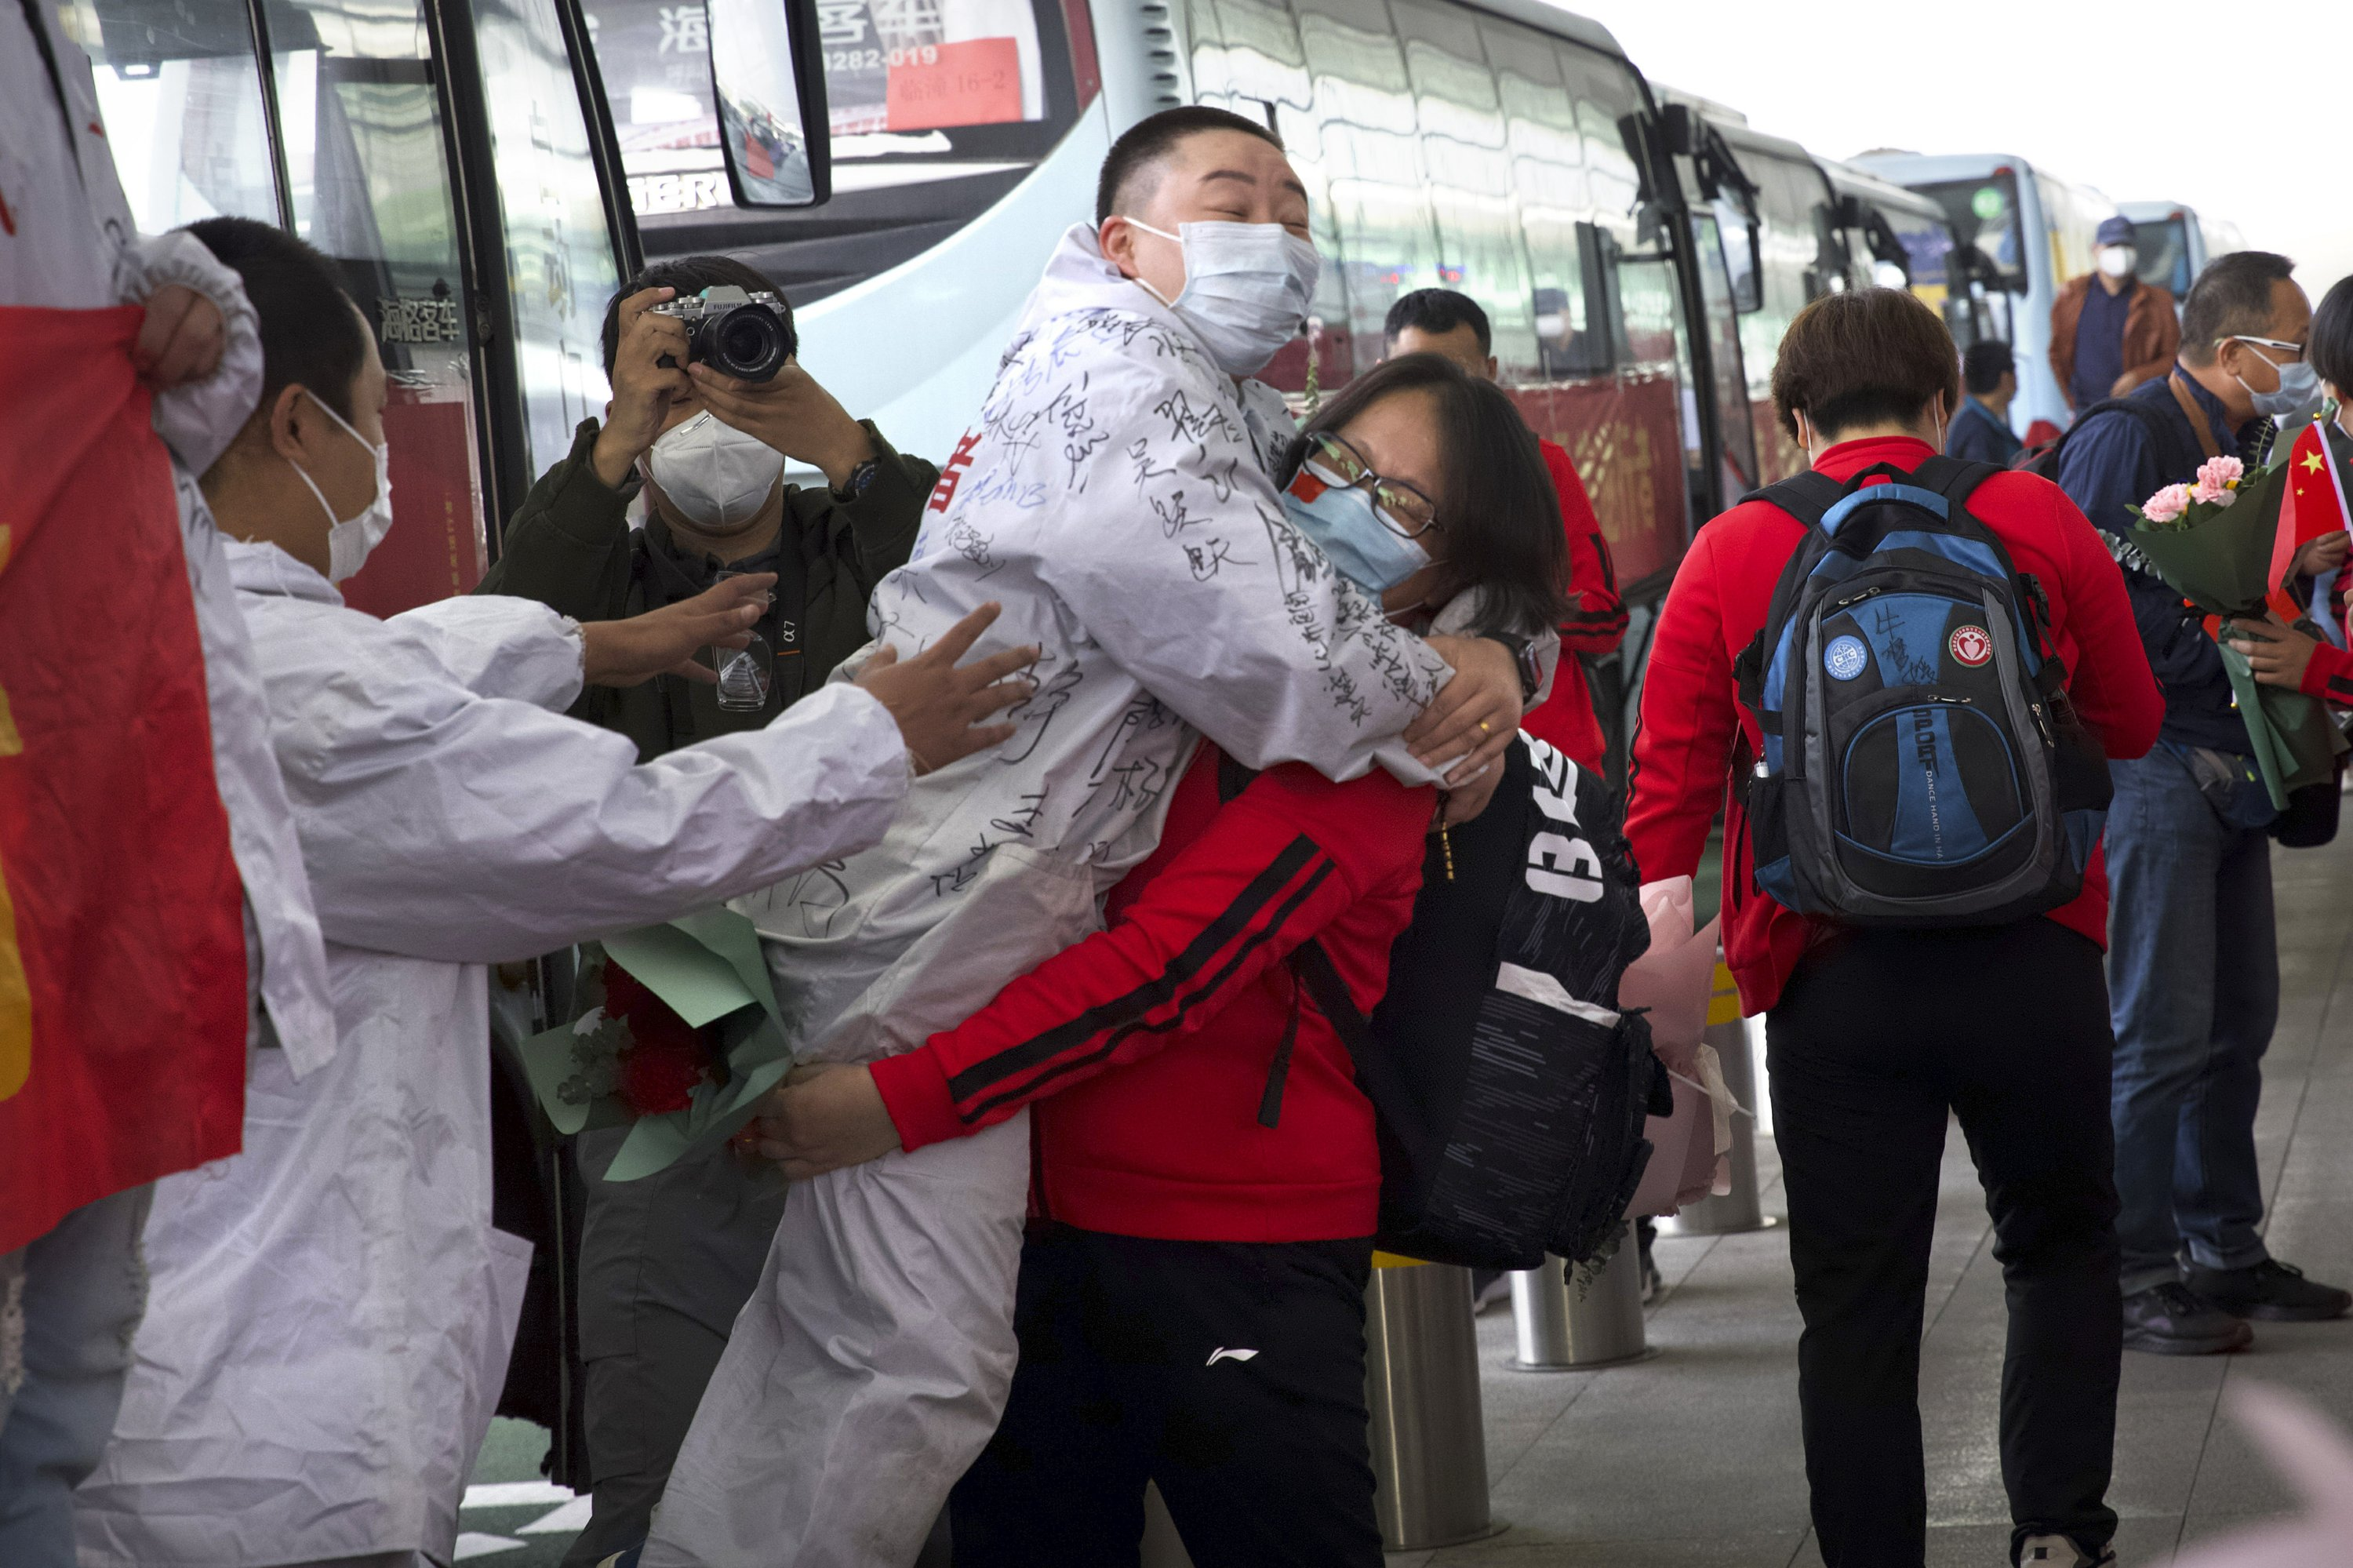 AP PHOTOS: Finding joy amid pandemic's anxiety and heartache